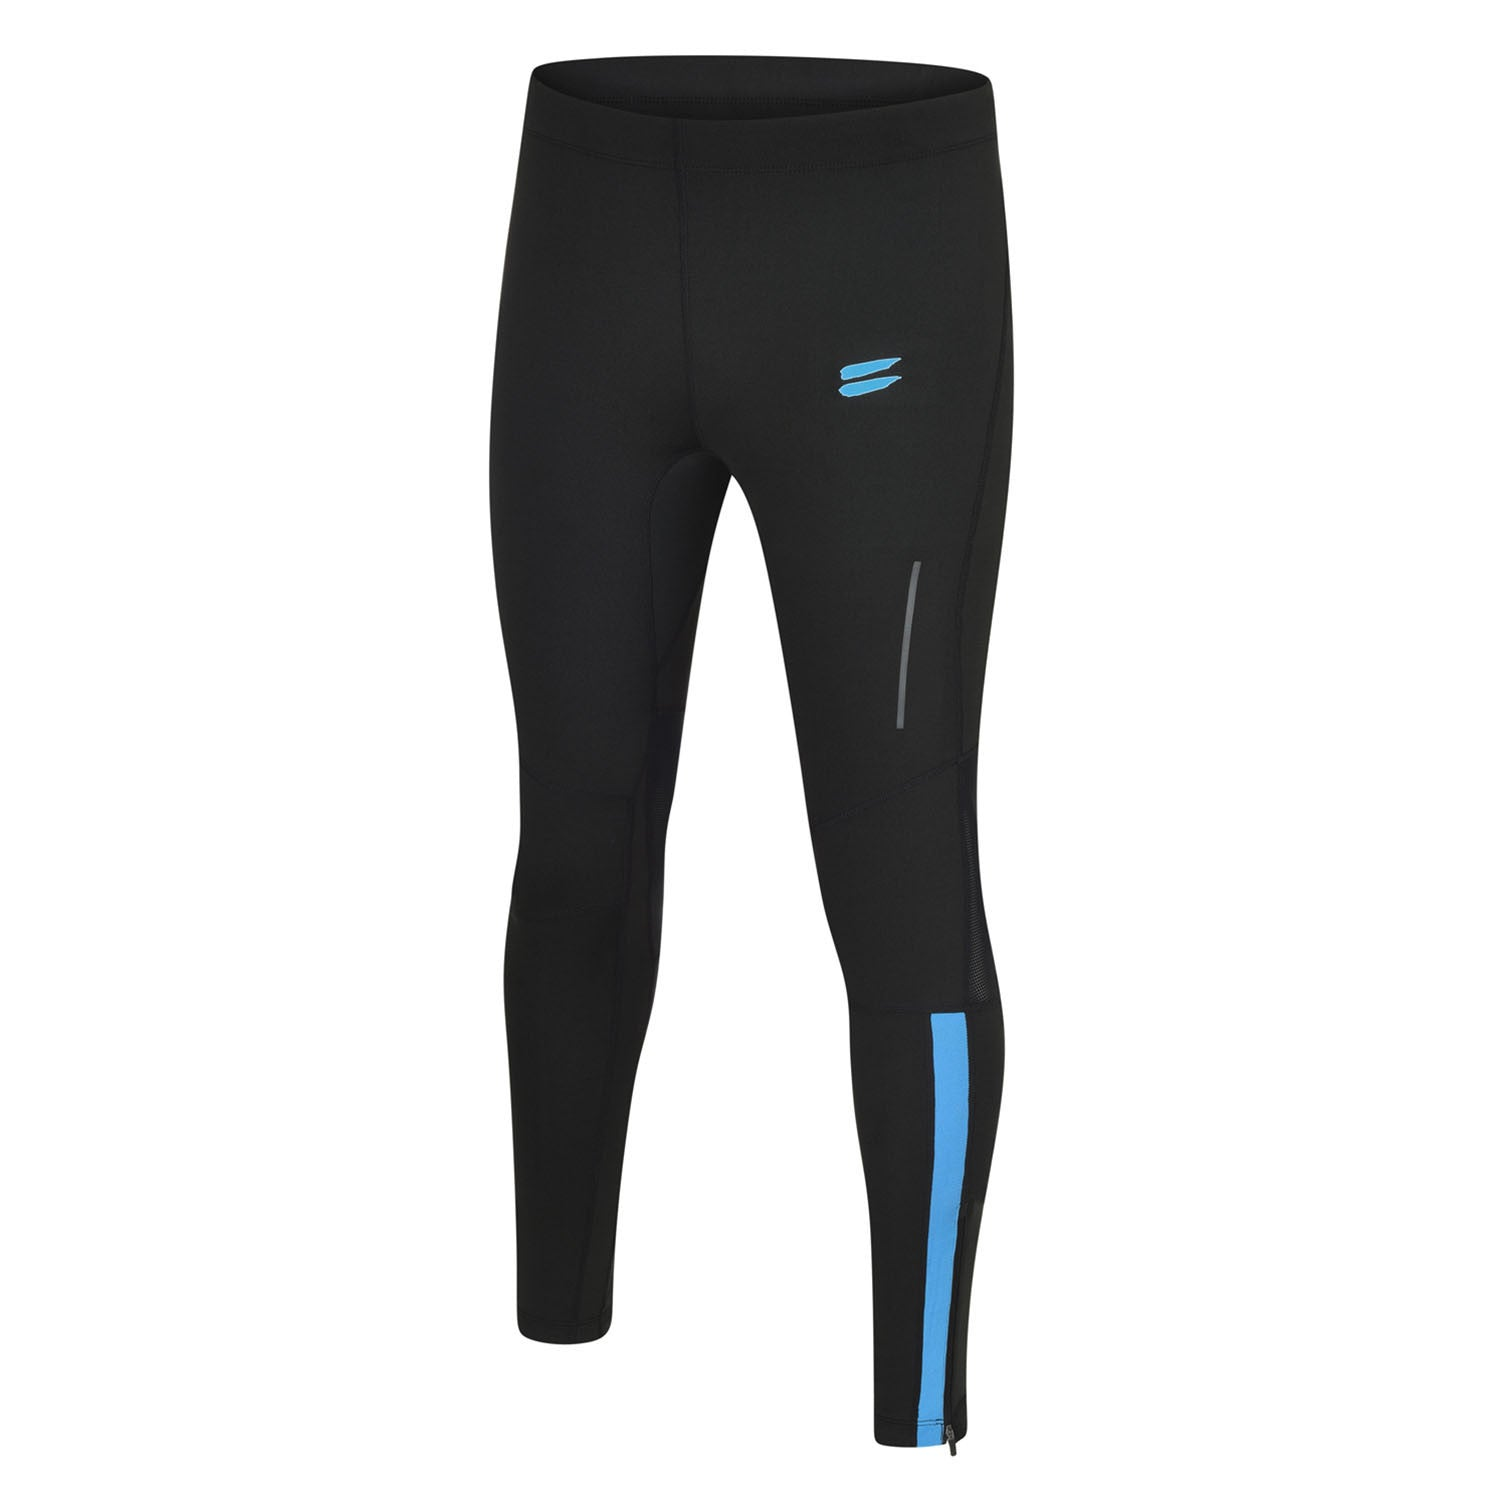 Men's Core Running Tights